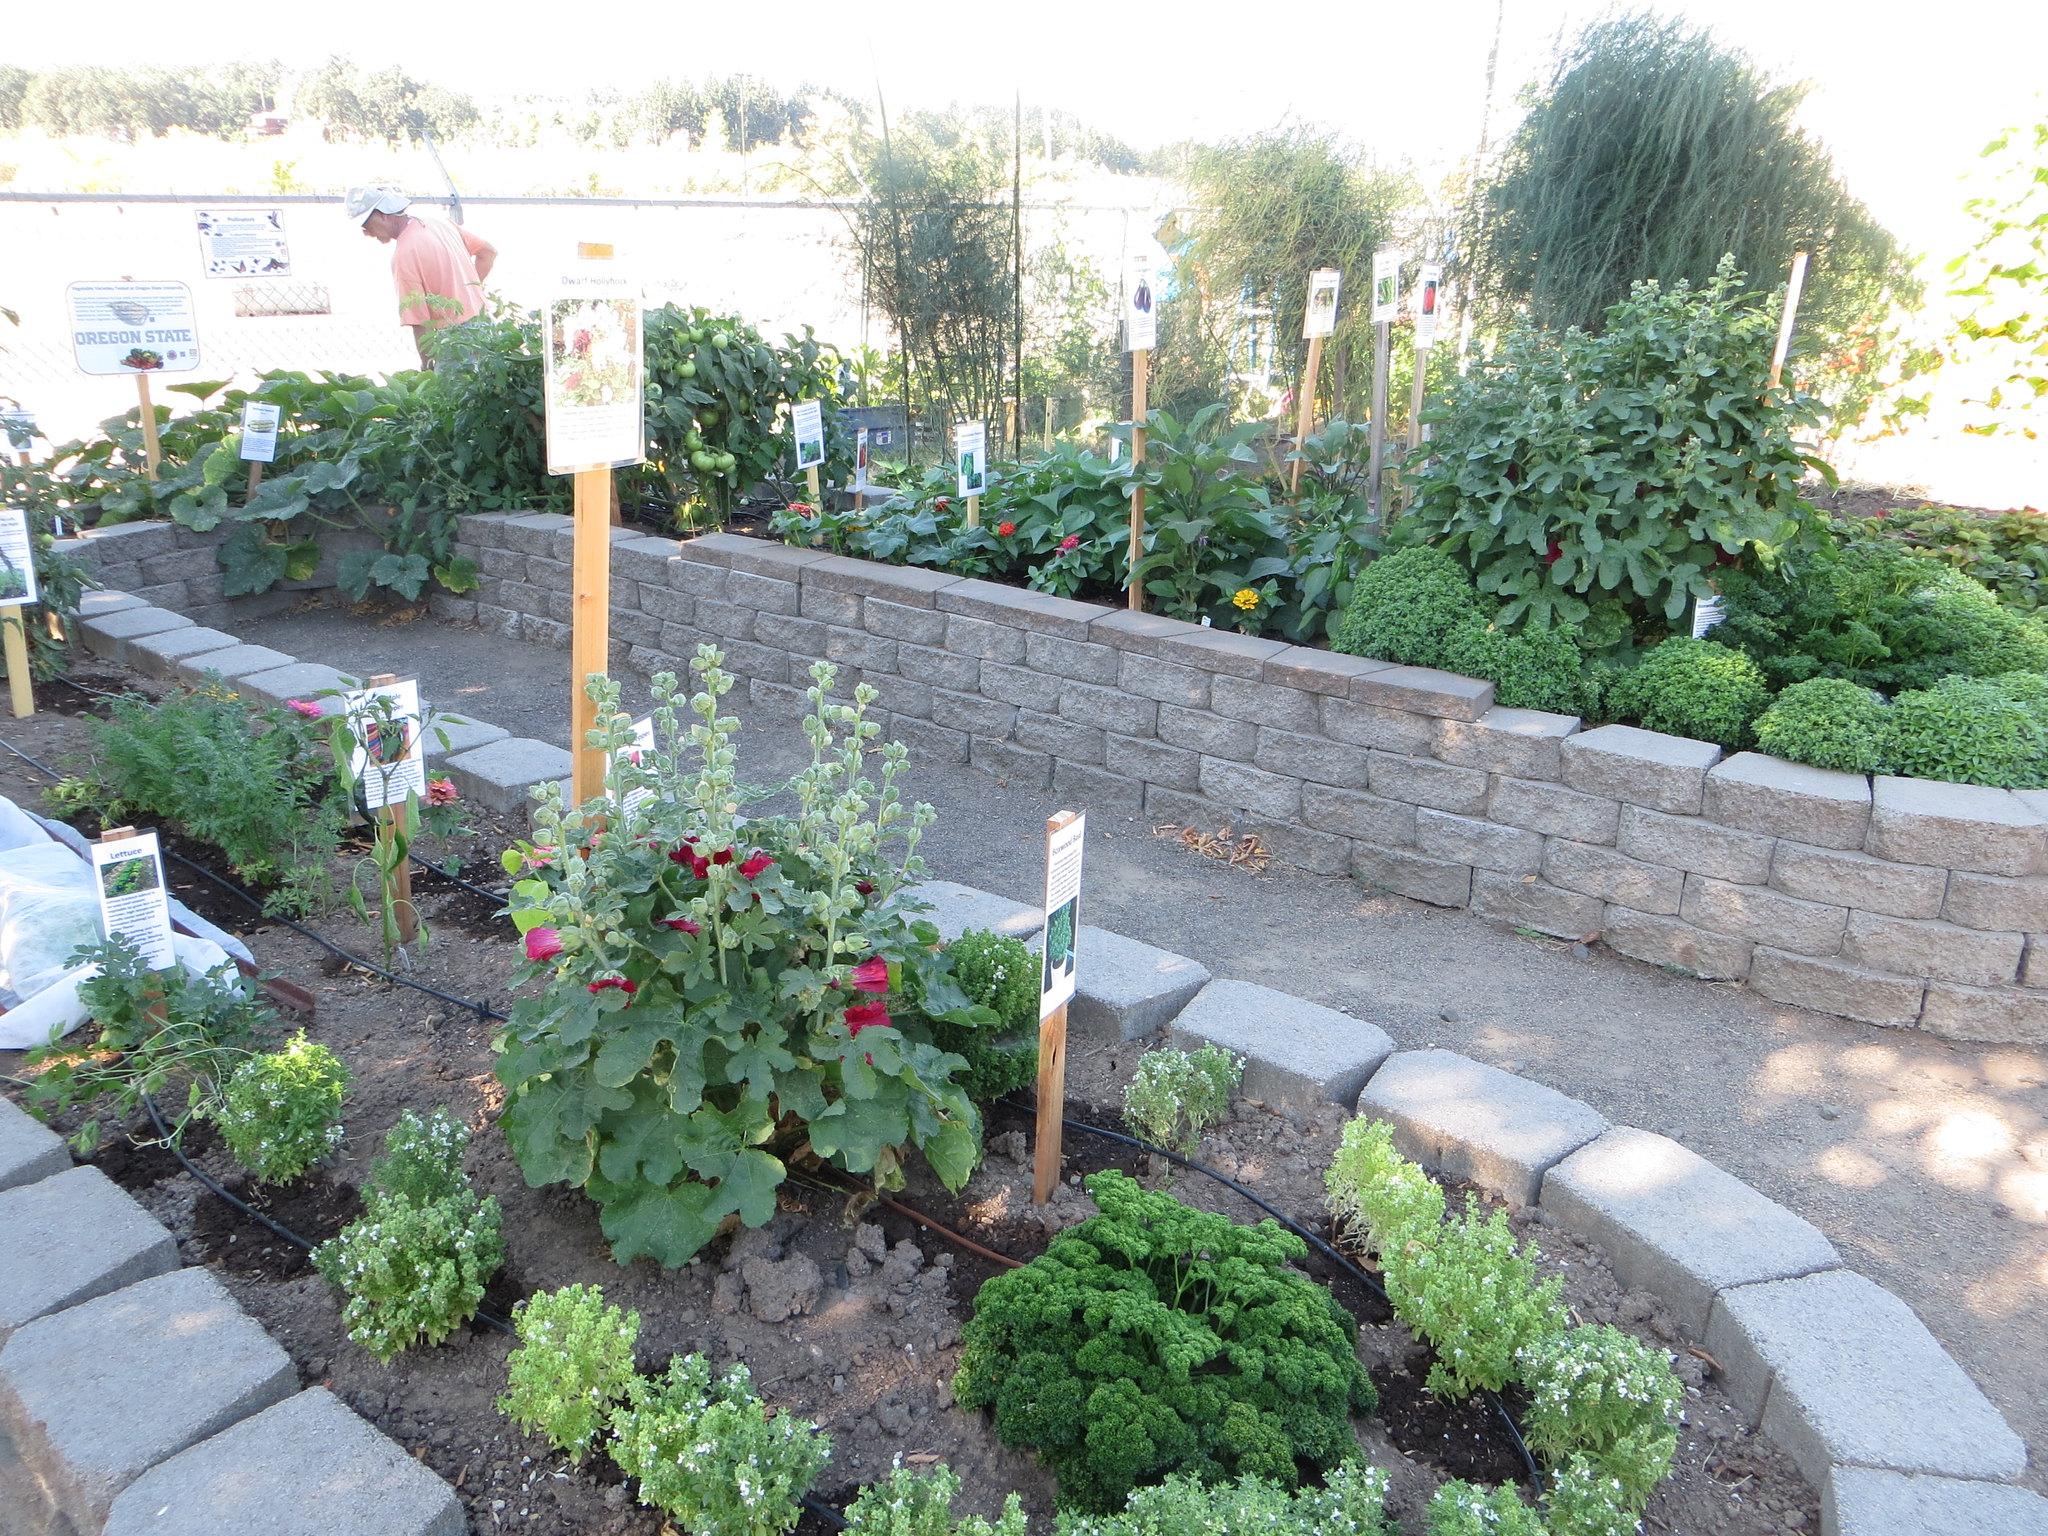 Study shows some urban gardens contain too much organic matter